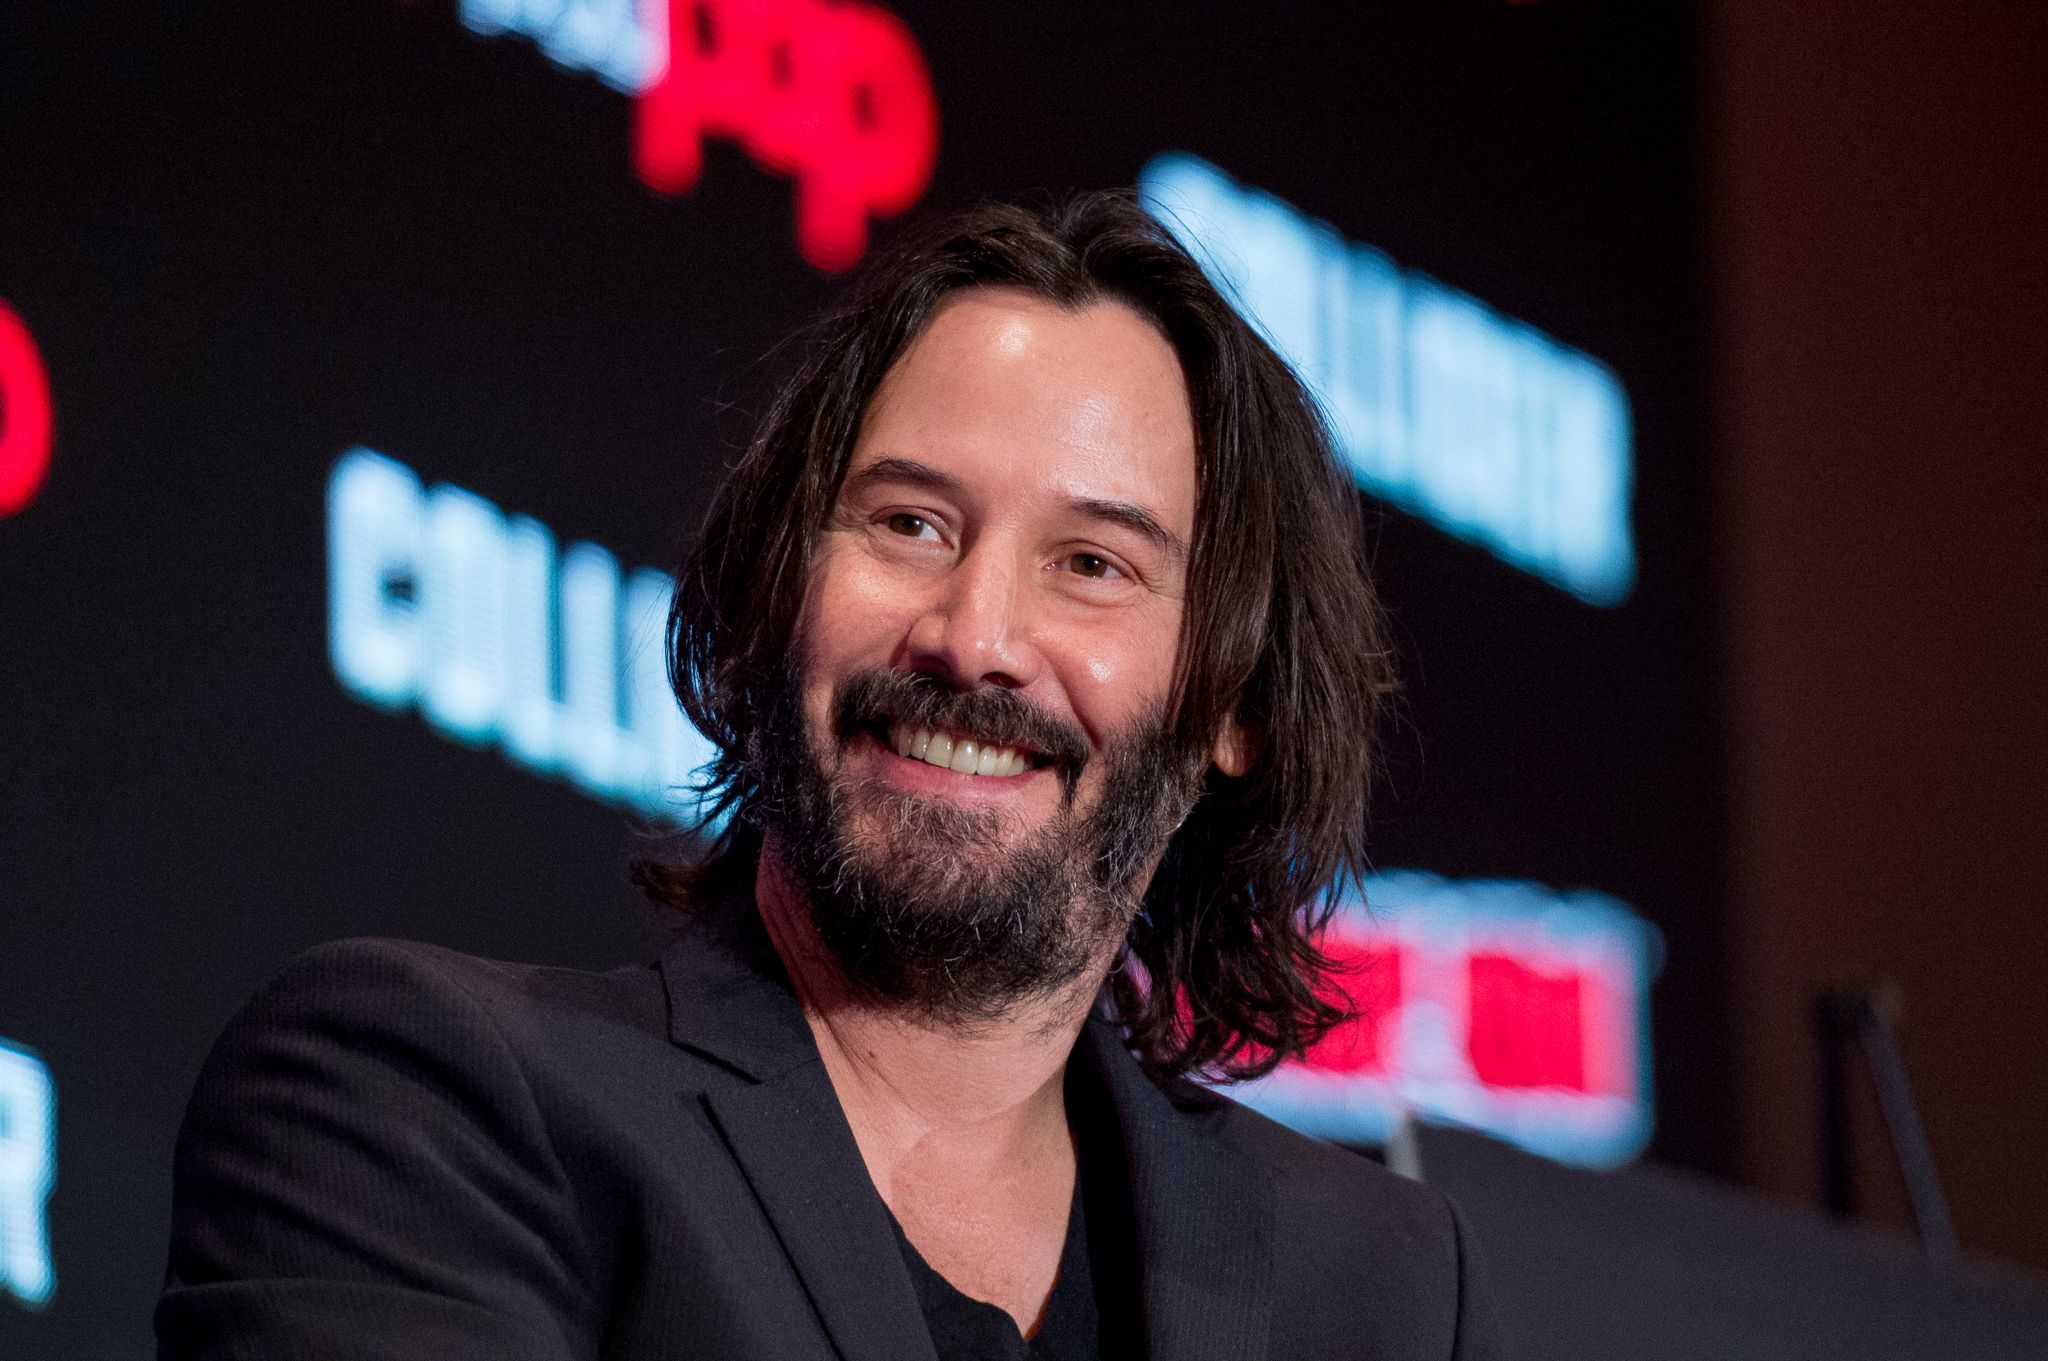 'Matrix 4' Star Keanu Reeves Spotted Filming In San Francisco: Check Report